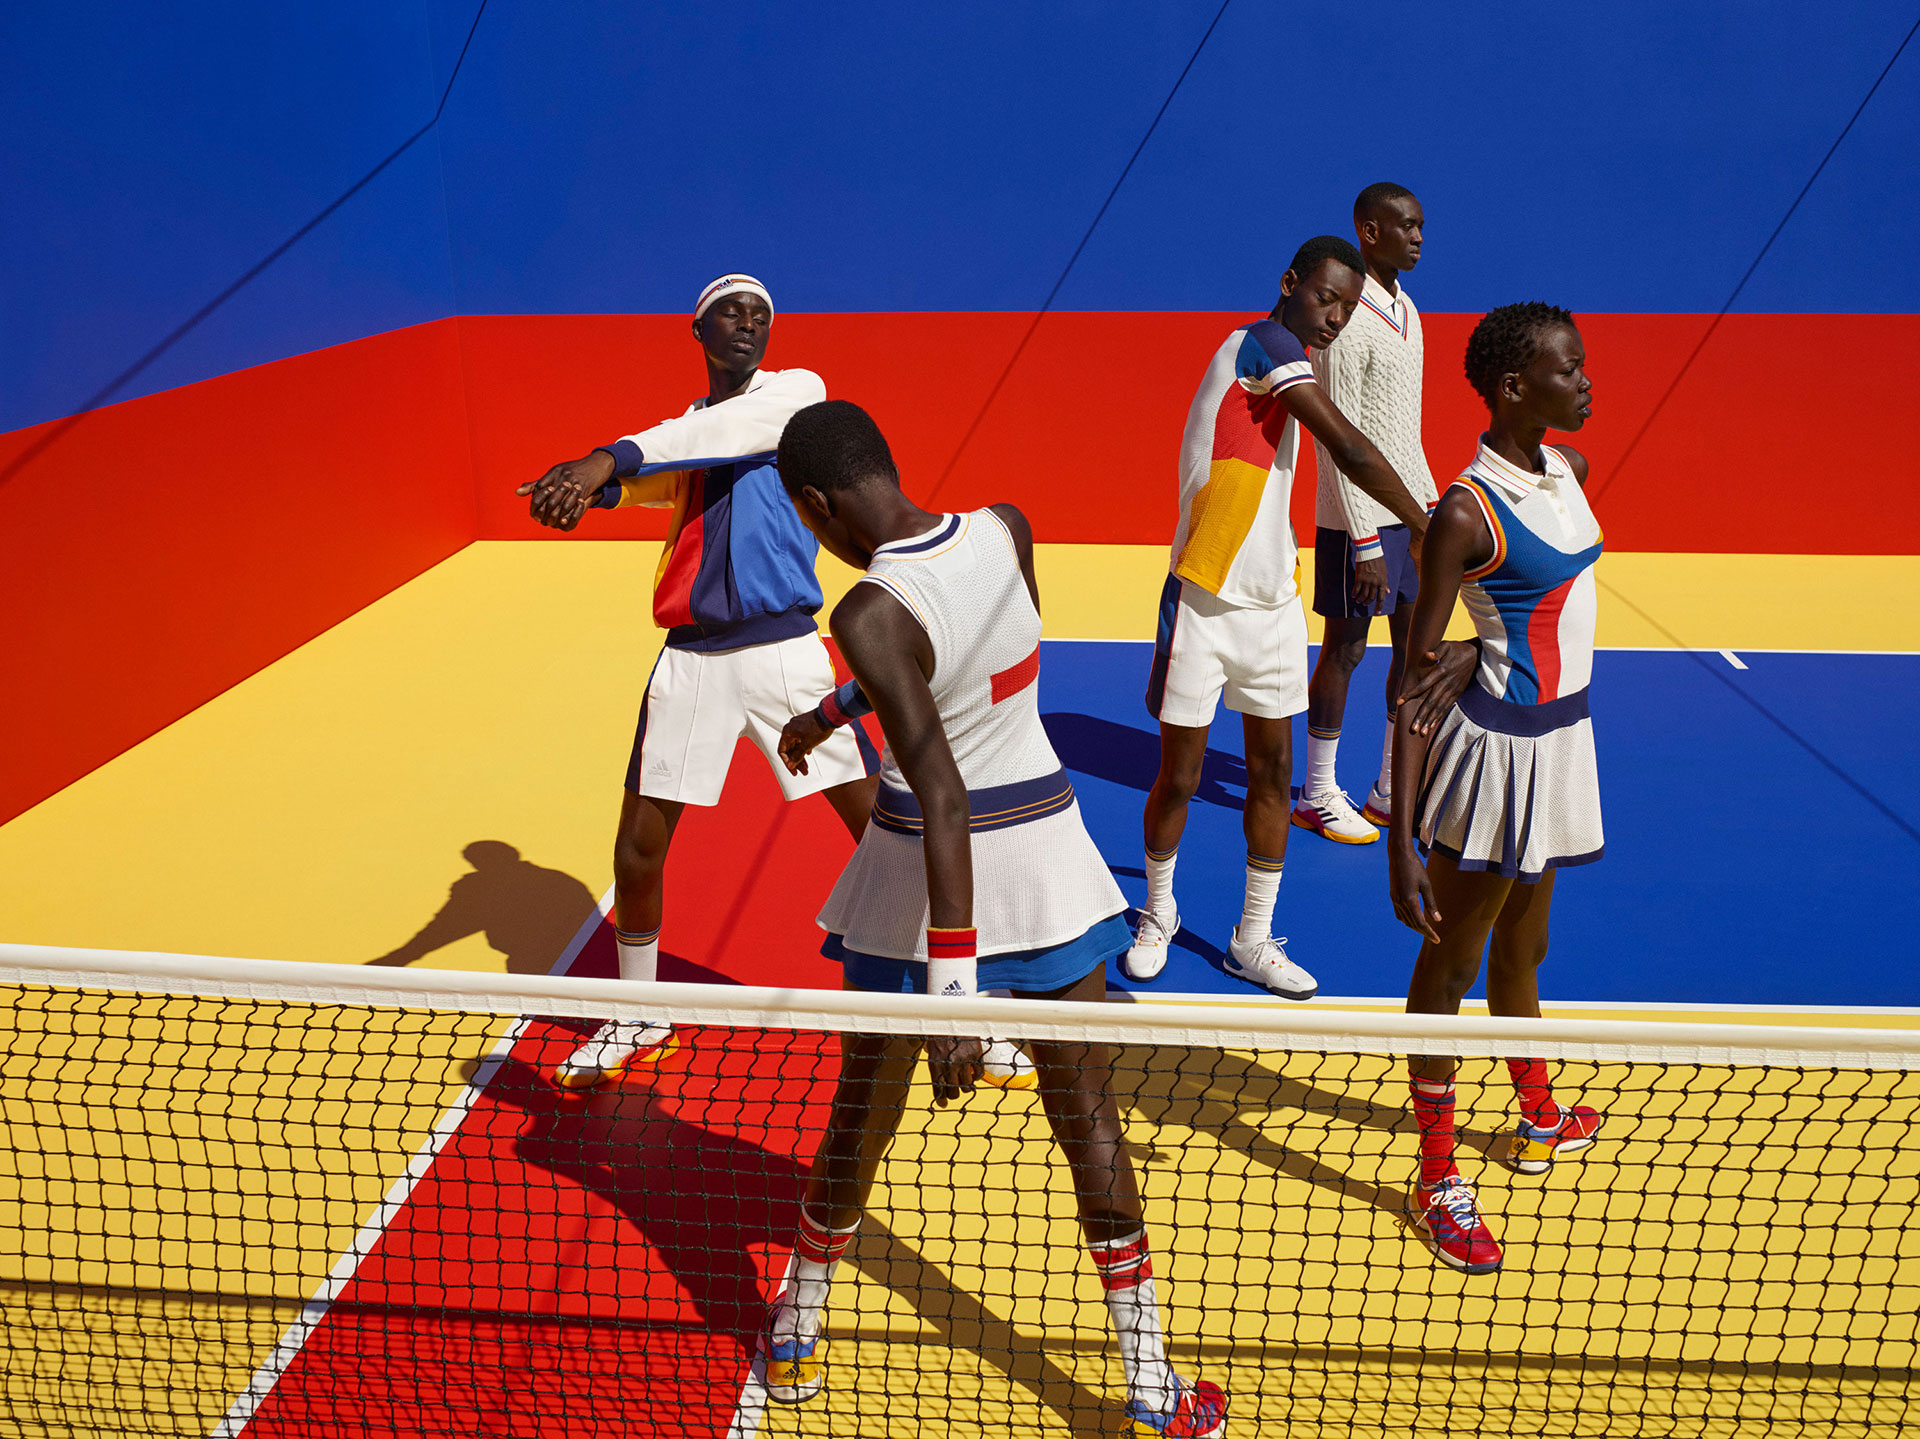 Viviane Sassen: adidas tenis por Pharrell Williams